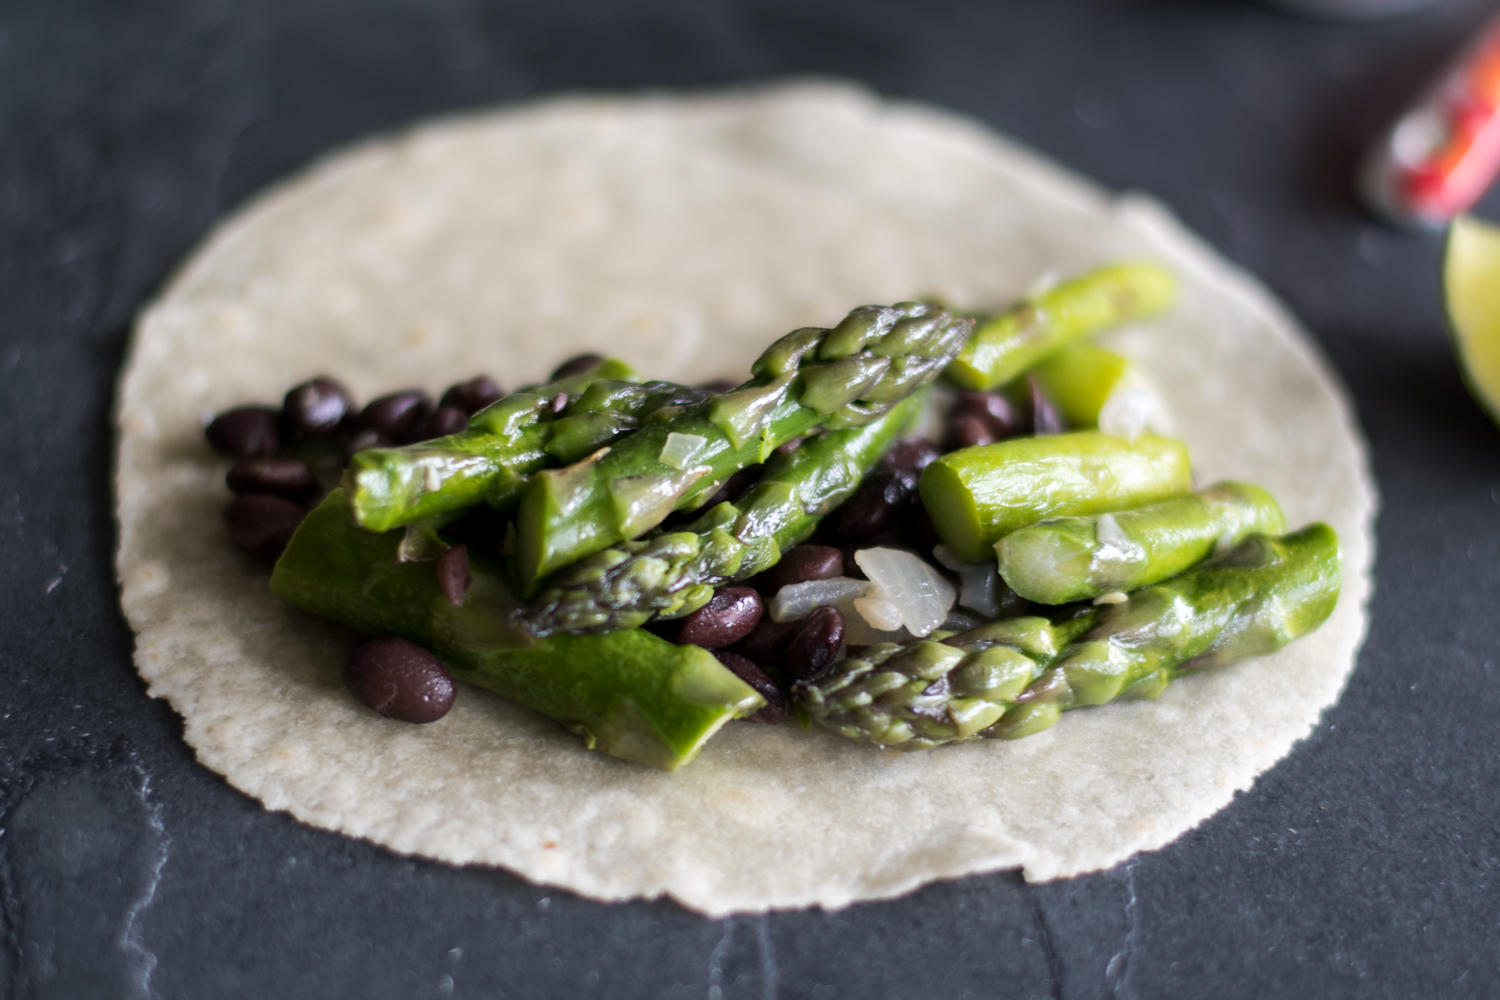 Easy Asparagus and Black Bean Tacos are the perfect taco for spring! #vegan #taco #asparagus #spring #glutenfree